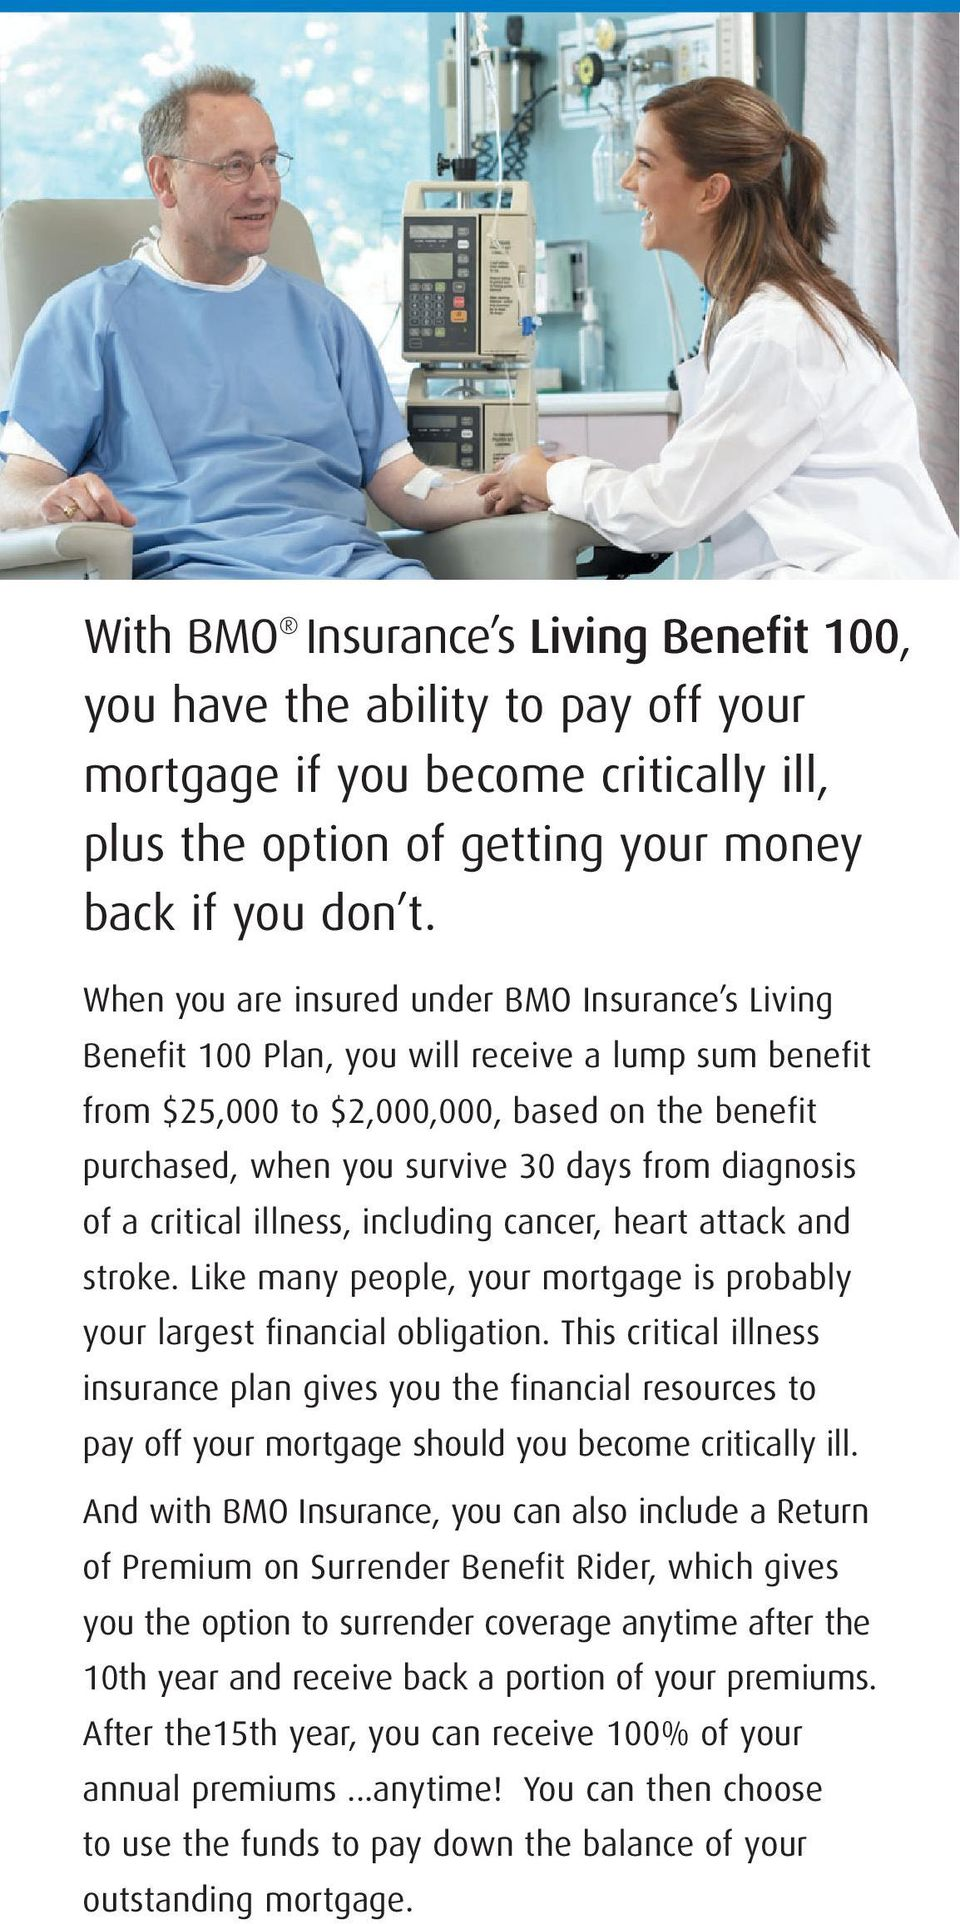 diagnosis of a critical illness, including cancer, heart attack and stroke. Like many people, your mortgage is probably your largest financial obligation.